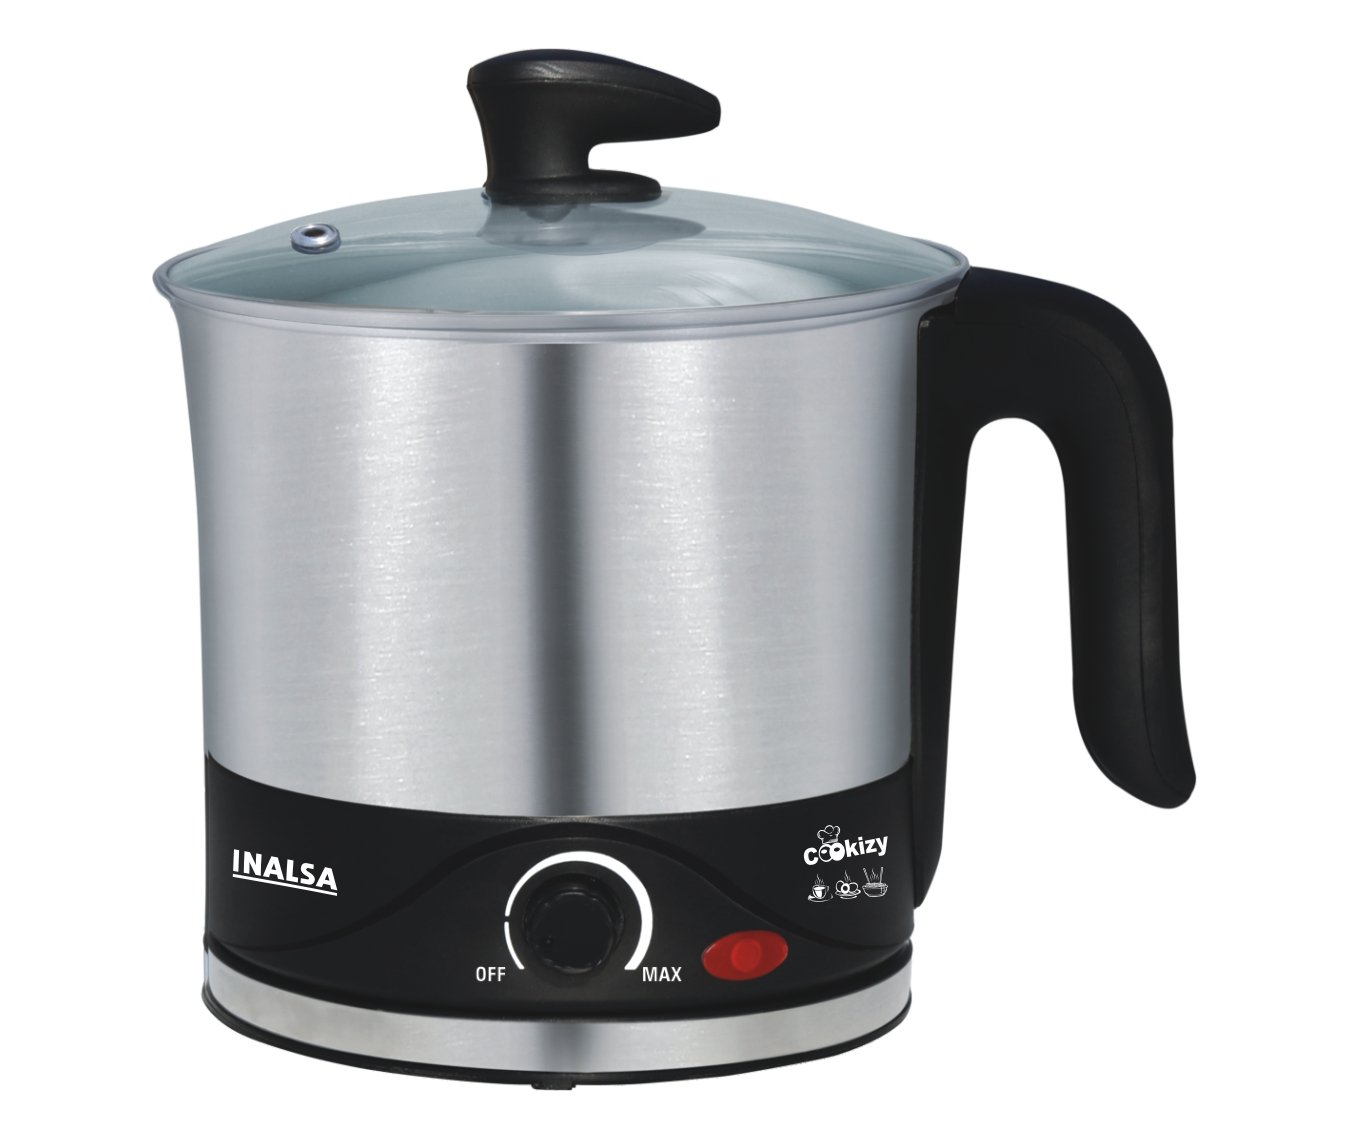 Inalsa Cookizy 1.5-Litre Kettle